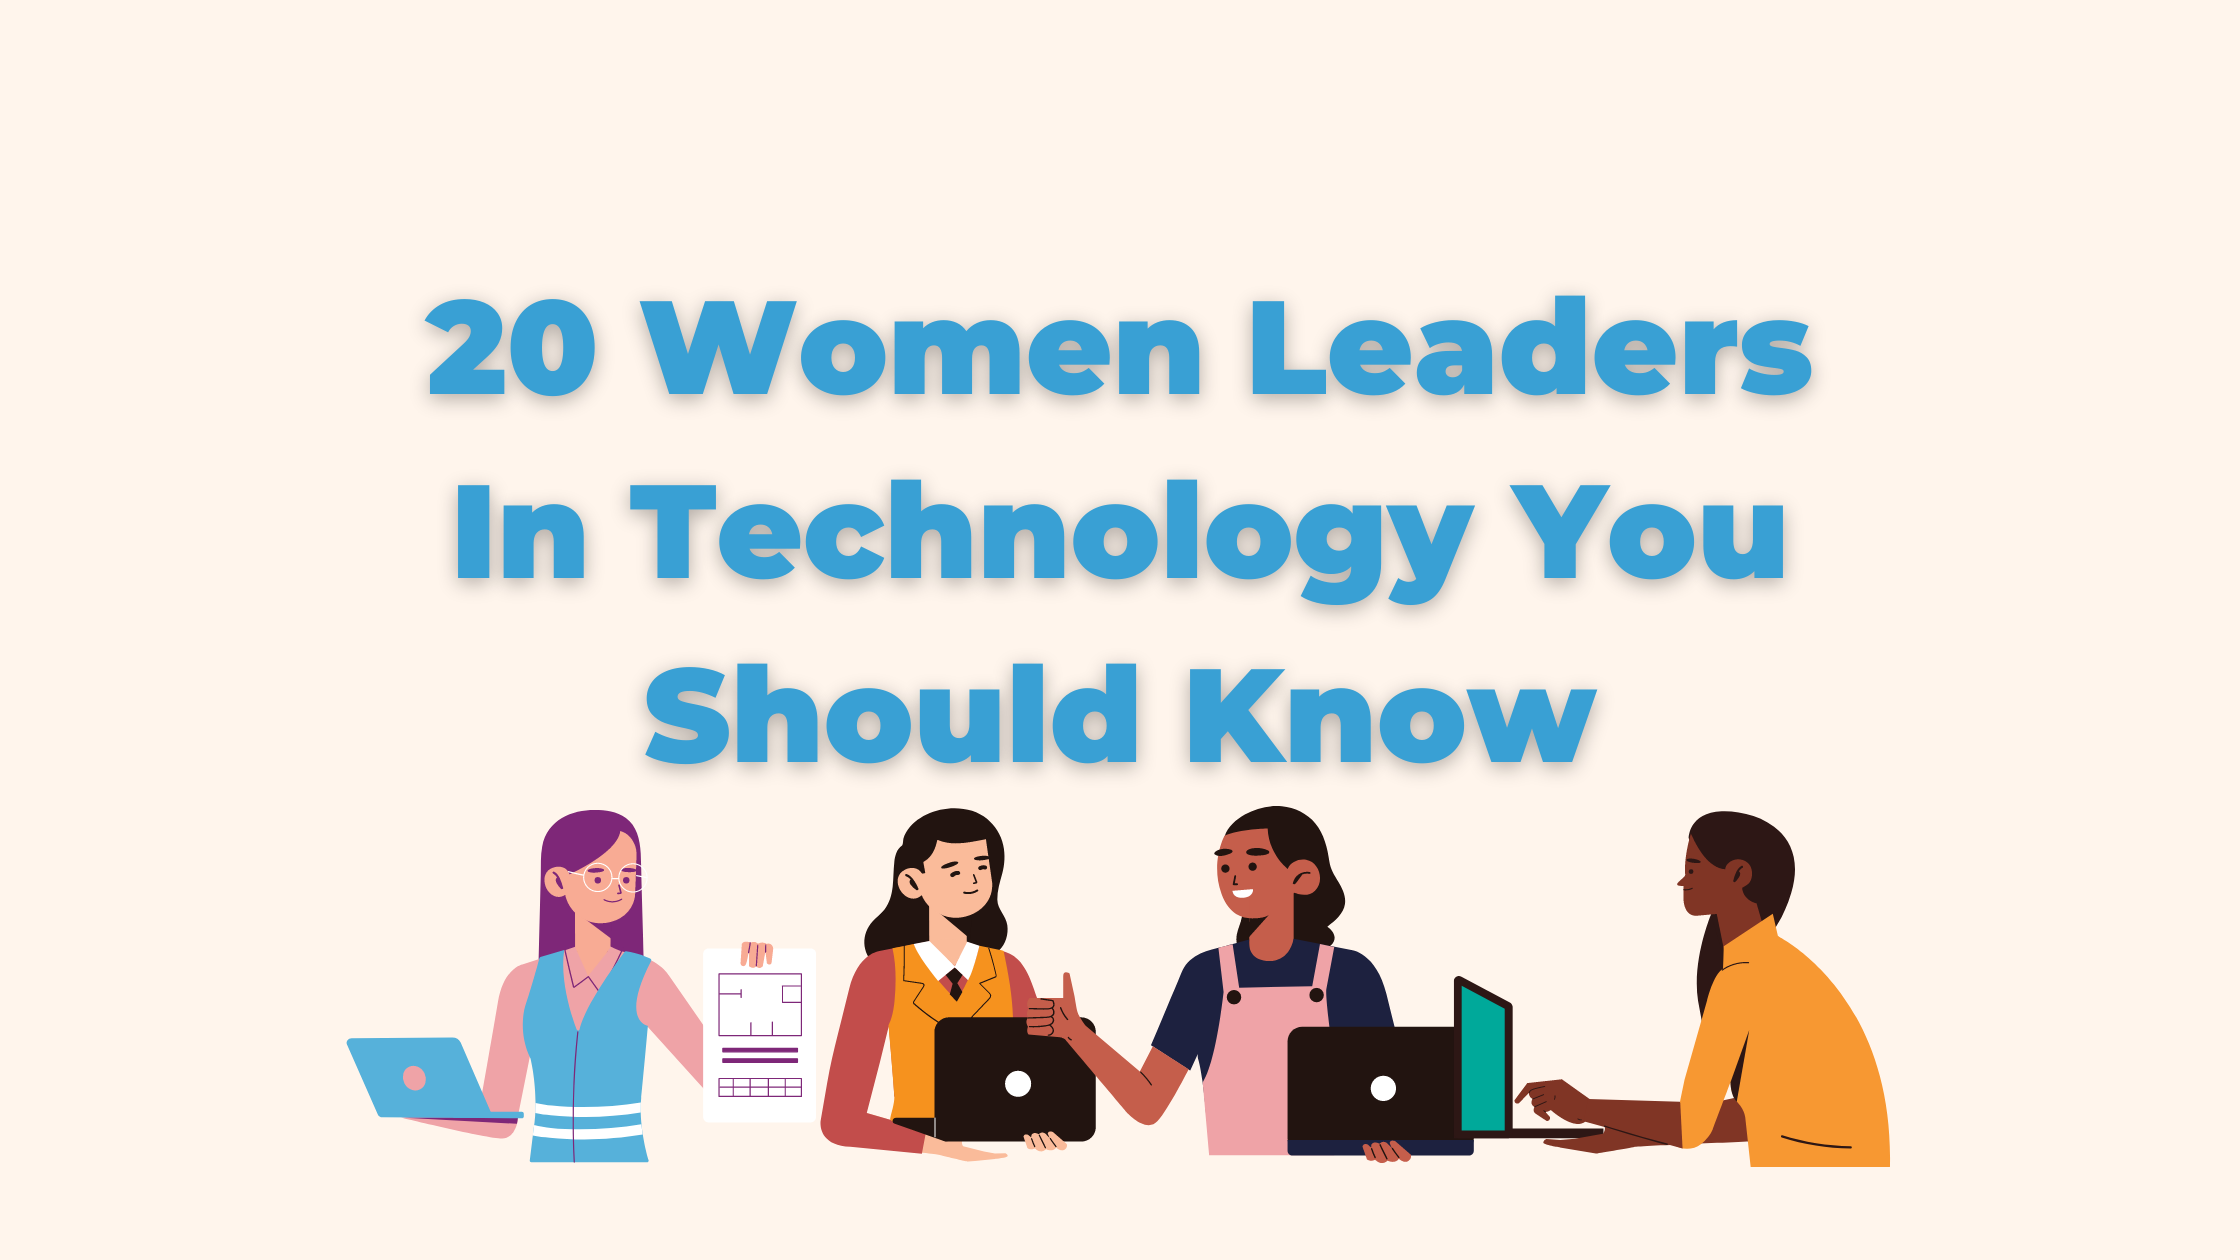 20 Women Leaders In Technology You Should Know